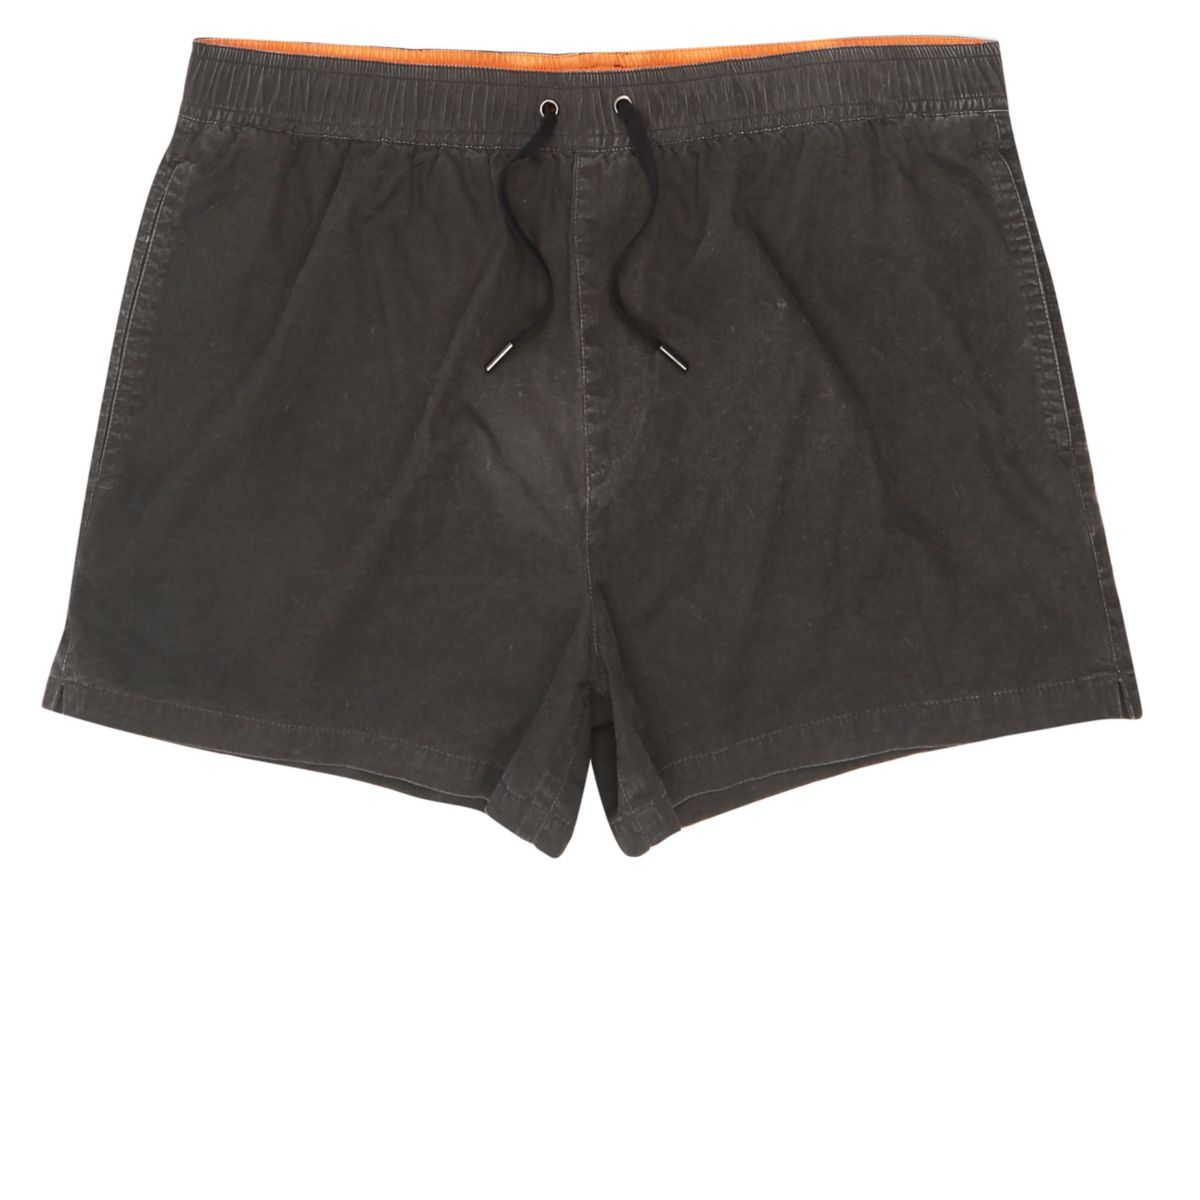 Black acid wash short swim trunks